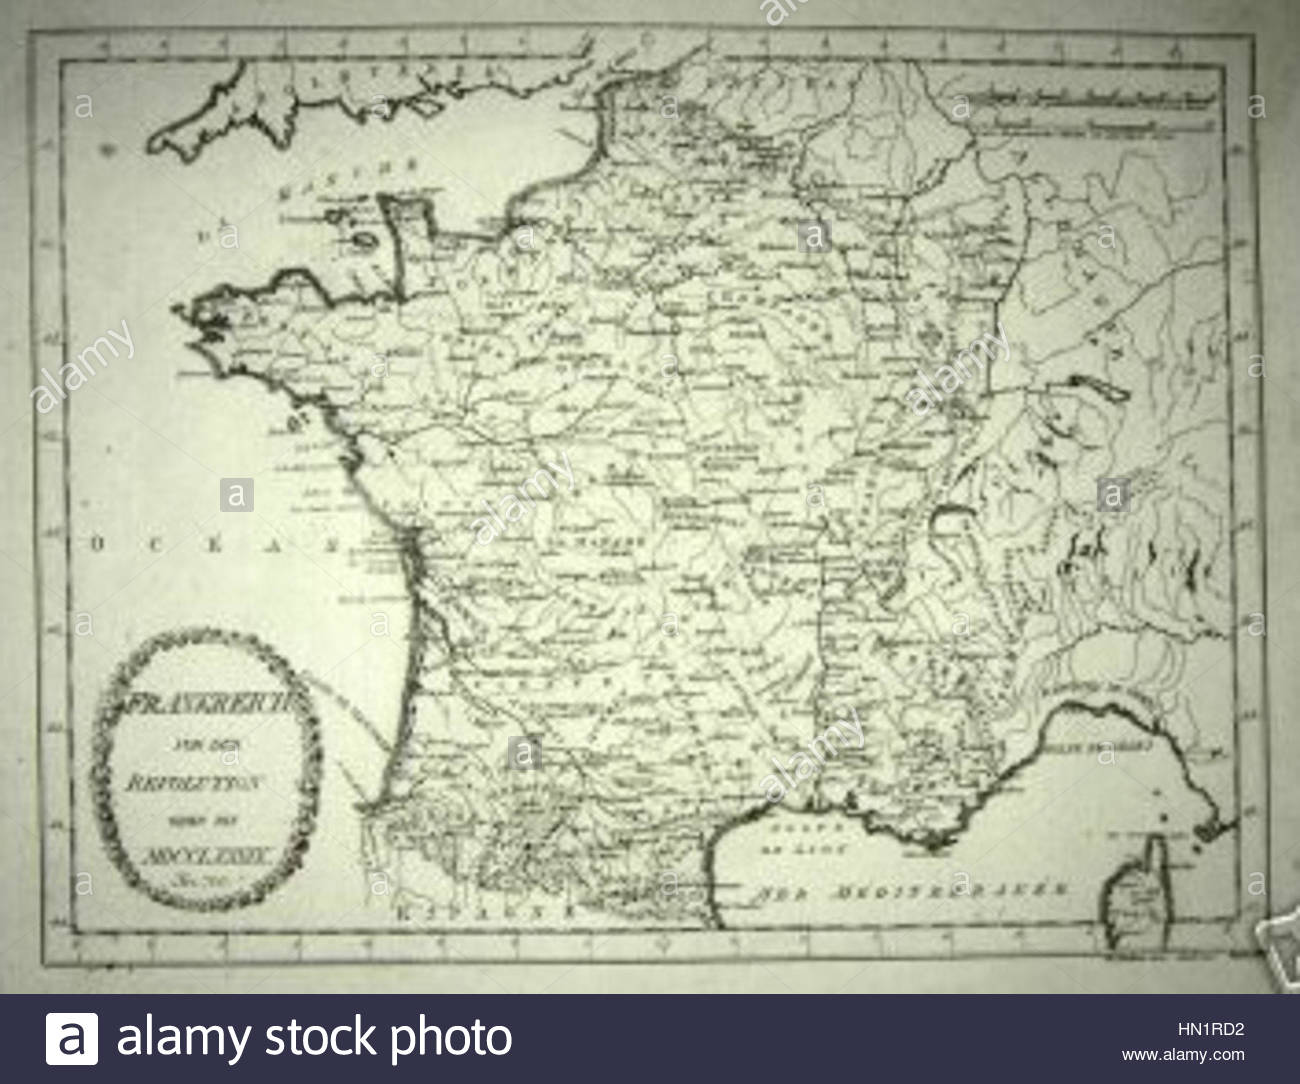 Map Of France In 1789.Map Of France In 1789 By Reilly 700 Stock Photo 133420702 Alamy